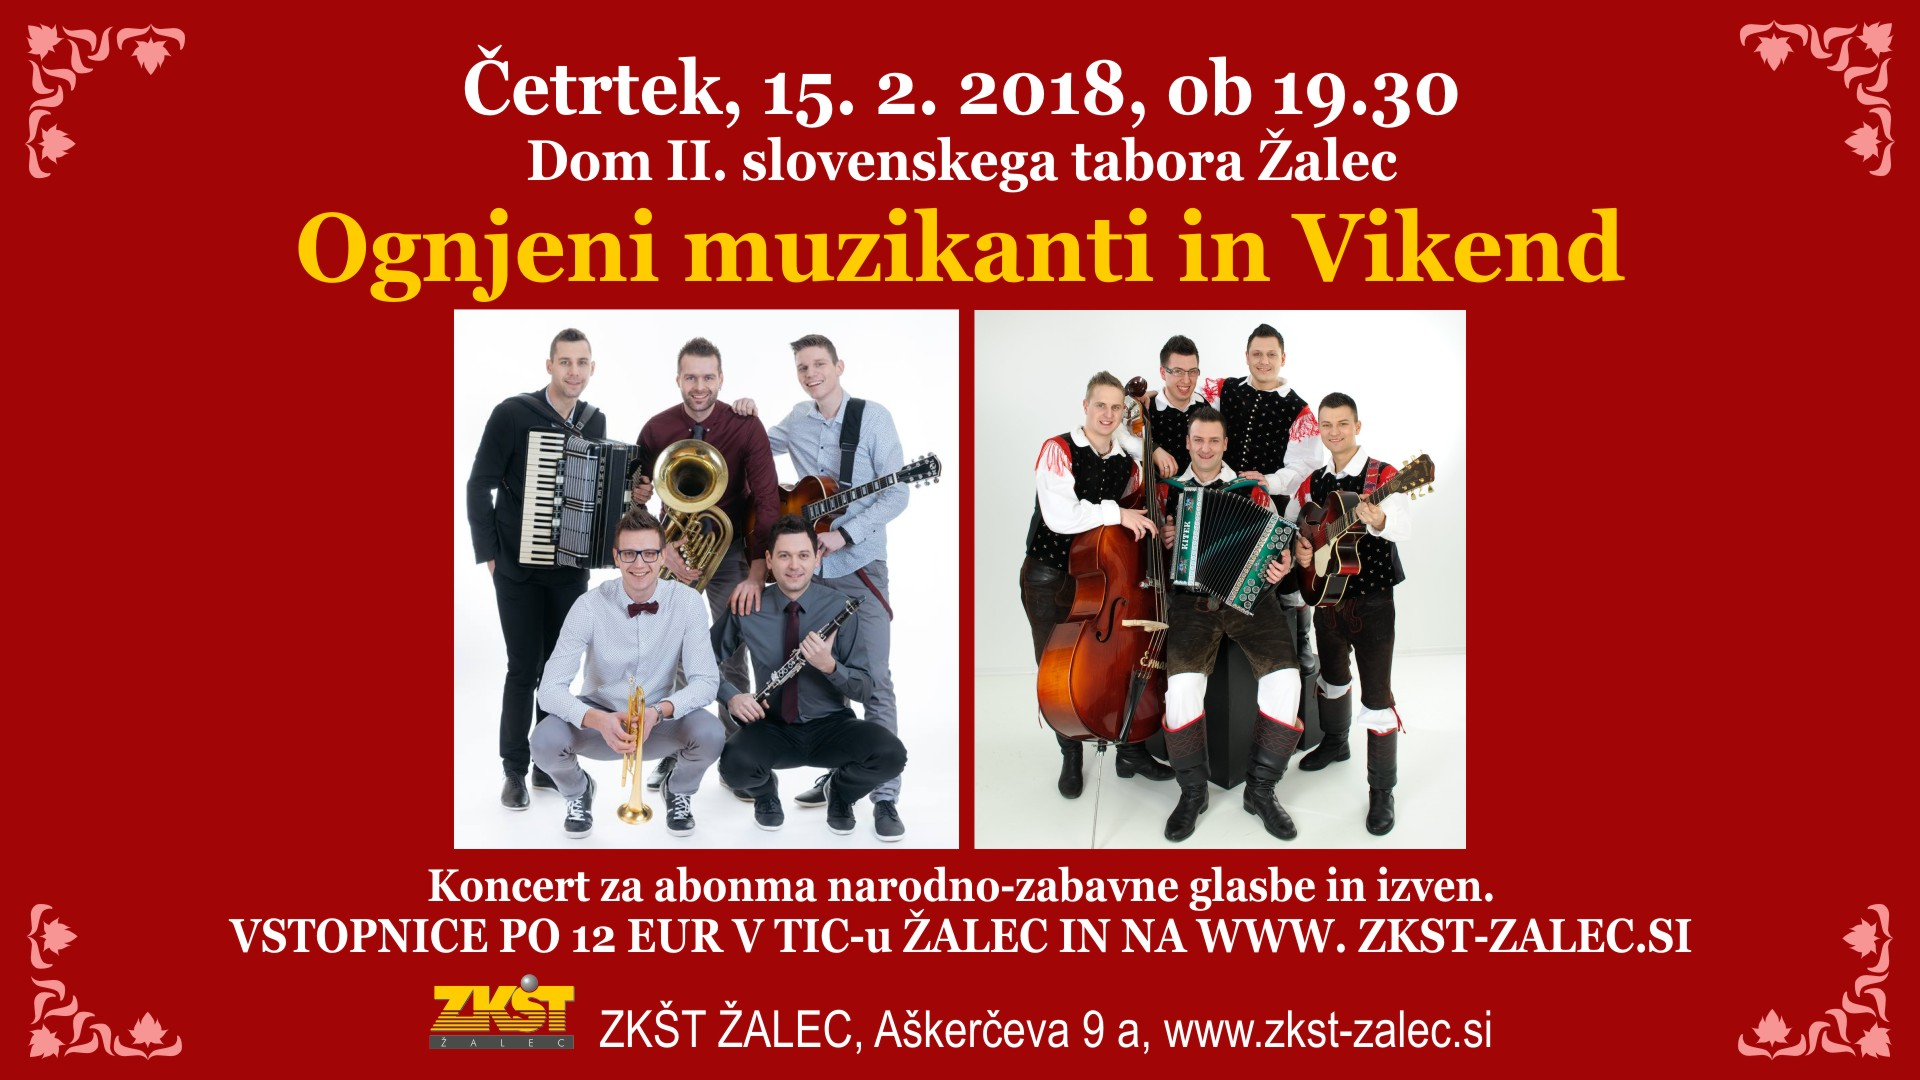 Ognjeni muzikanti in Vikend